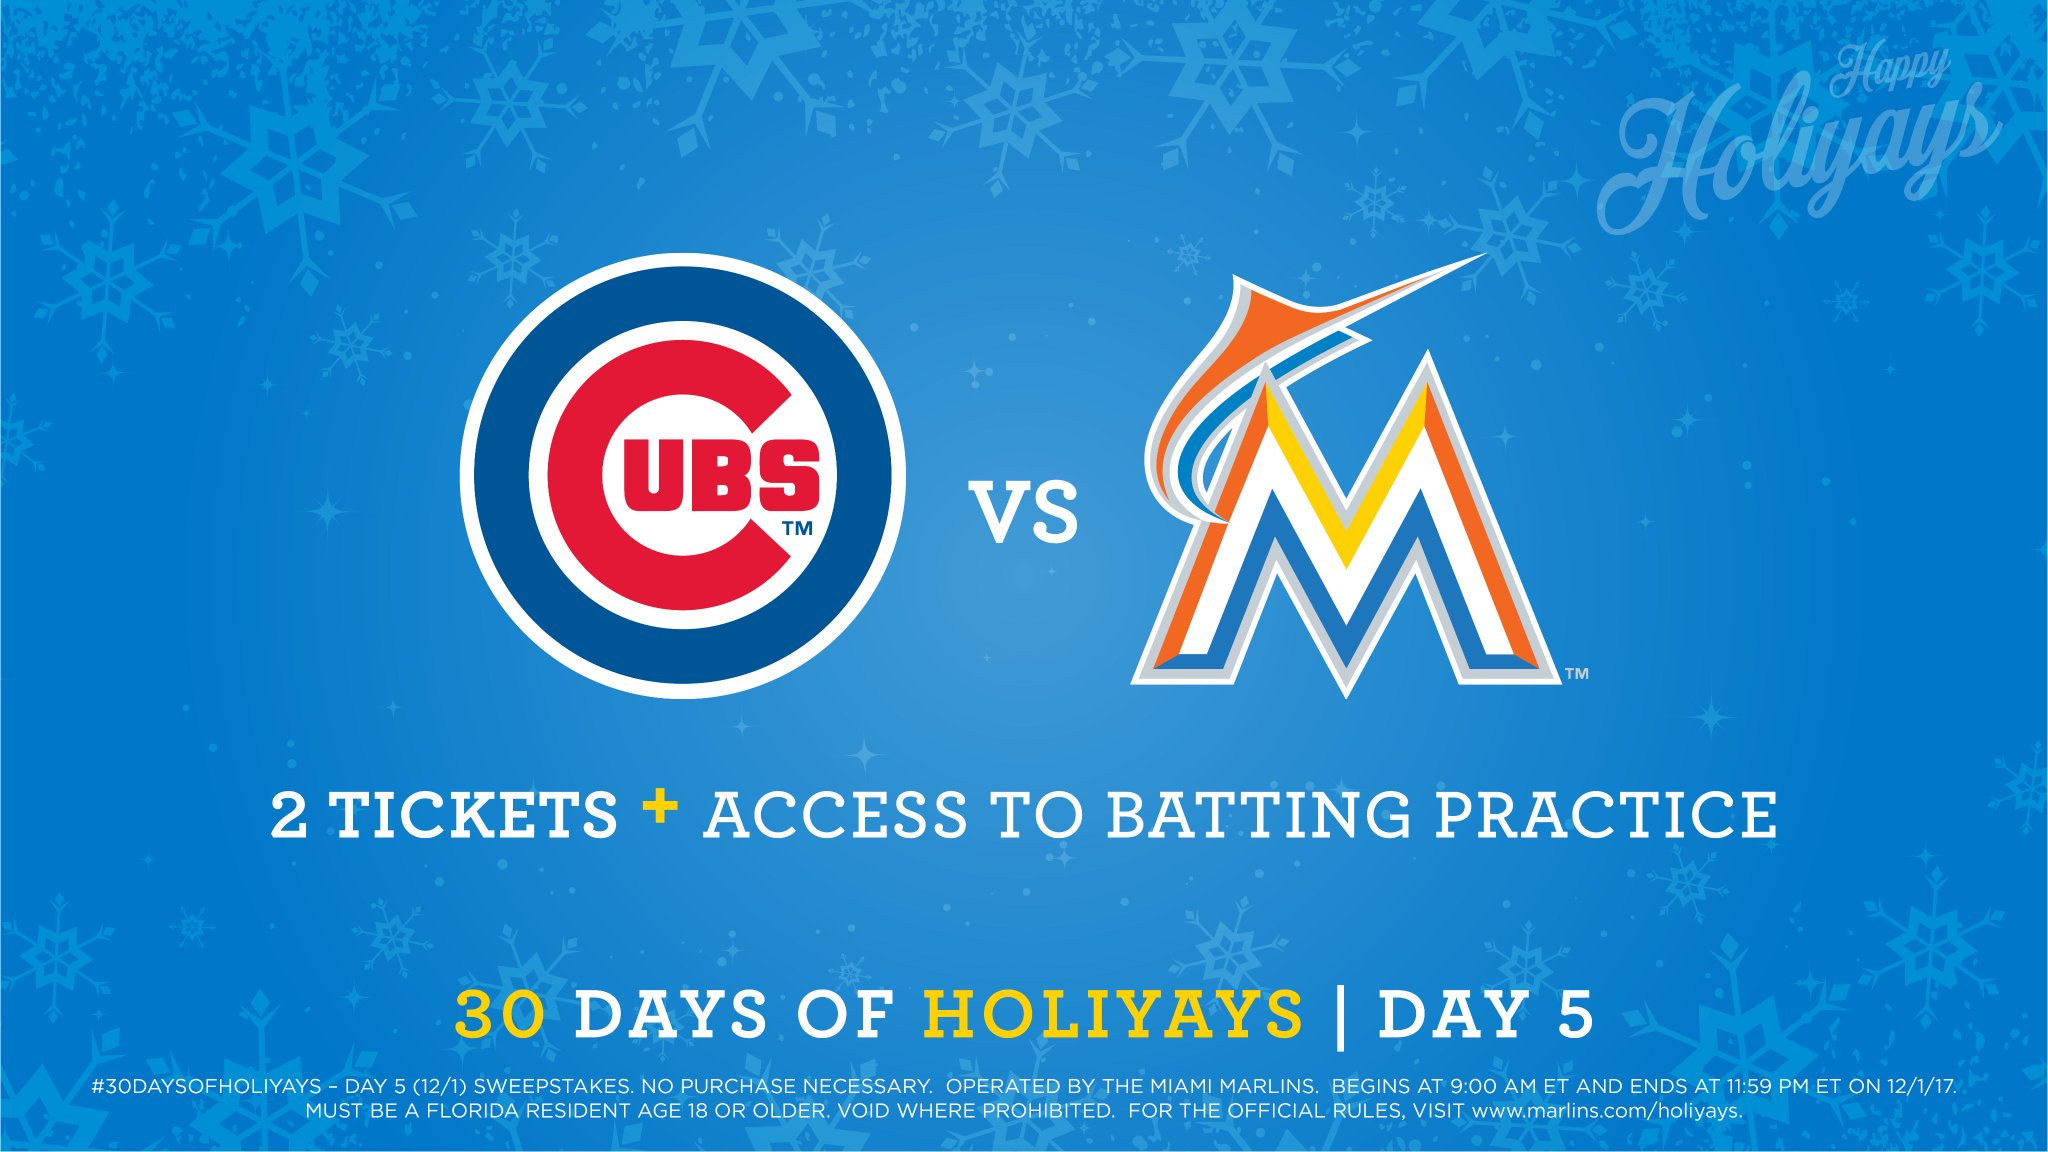 Miami Marlins On Twitter Go Get BP Access And Two Tickets To A Cubs Vs Game Next Season Follow Us Instagram For Your Chance